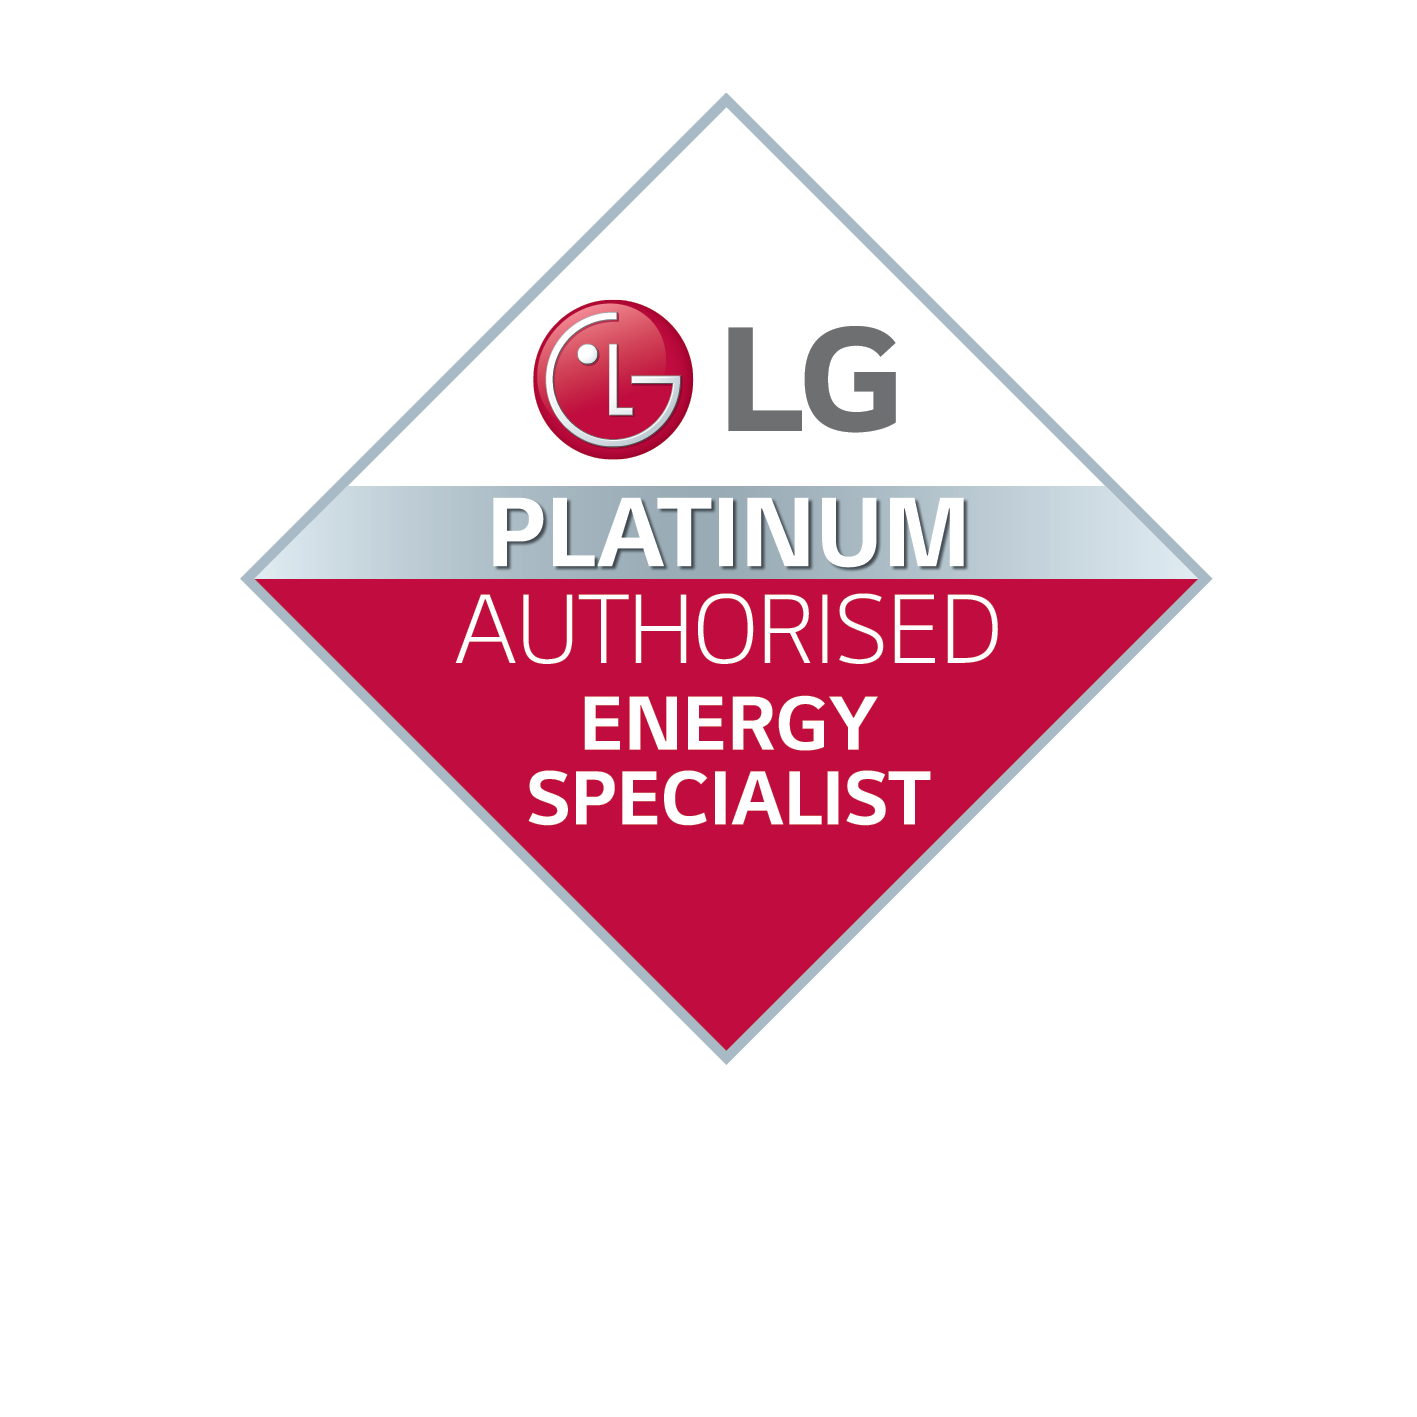 1844 SOLAR Authorised Energy Specialist Logo Platinum FINAL